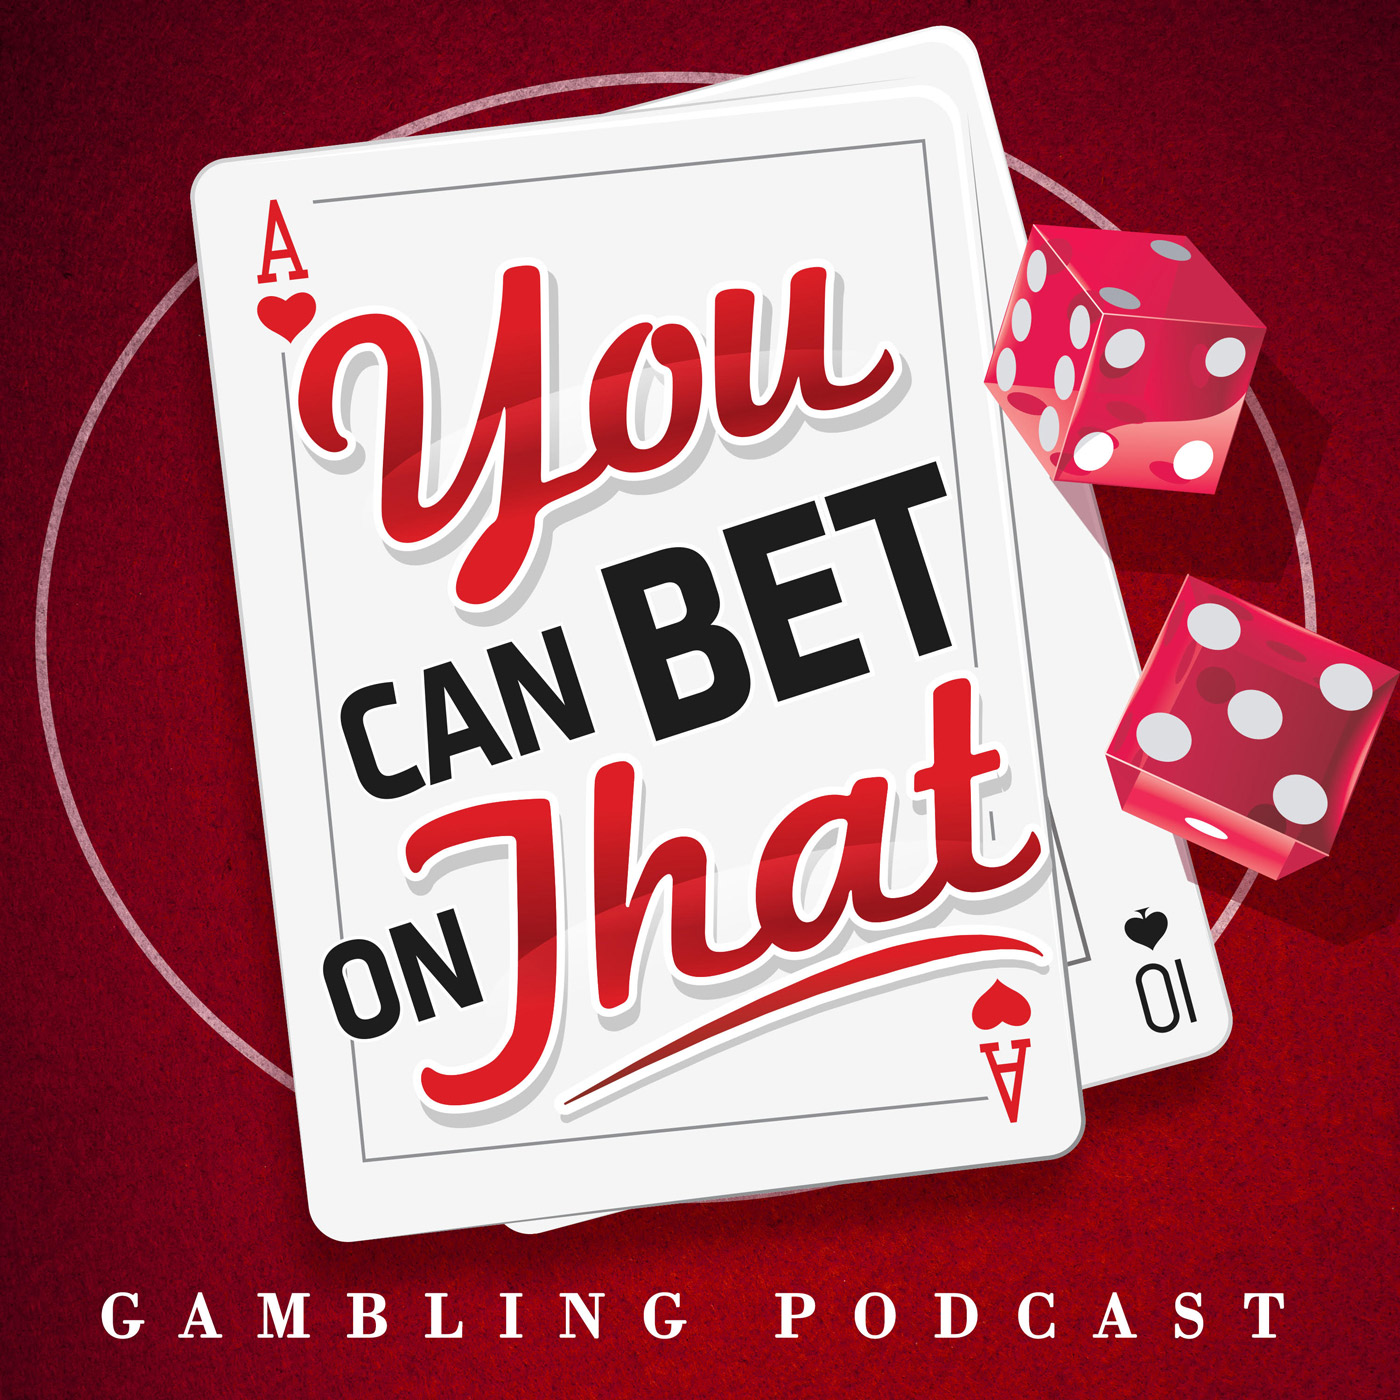 Gambling Podcast: You Can Bet on That show art